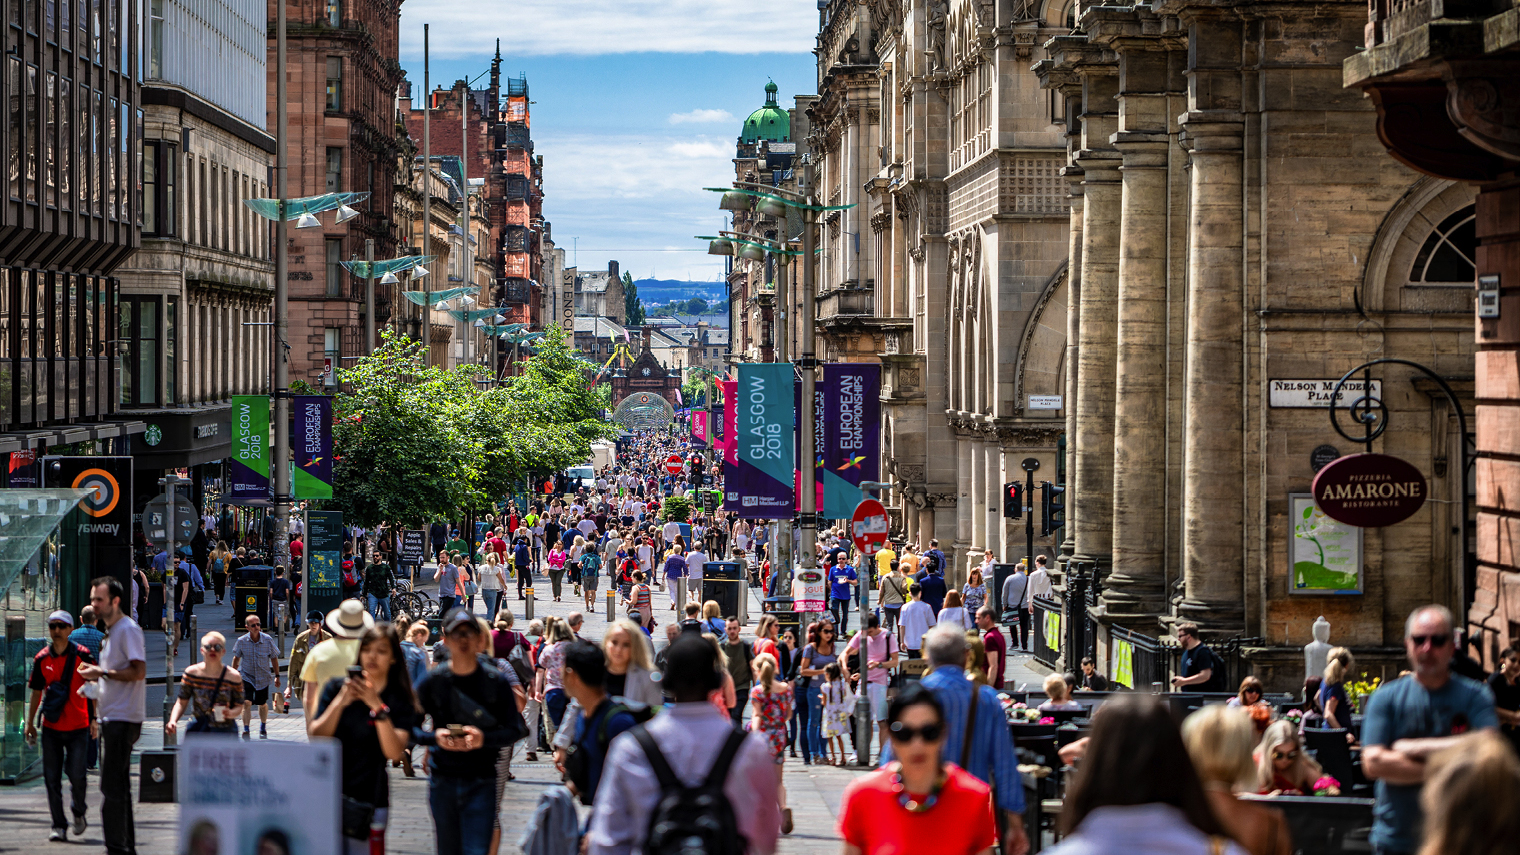 Glasgow high street with people on it